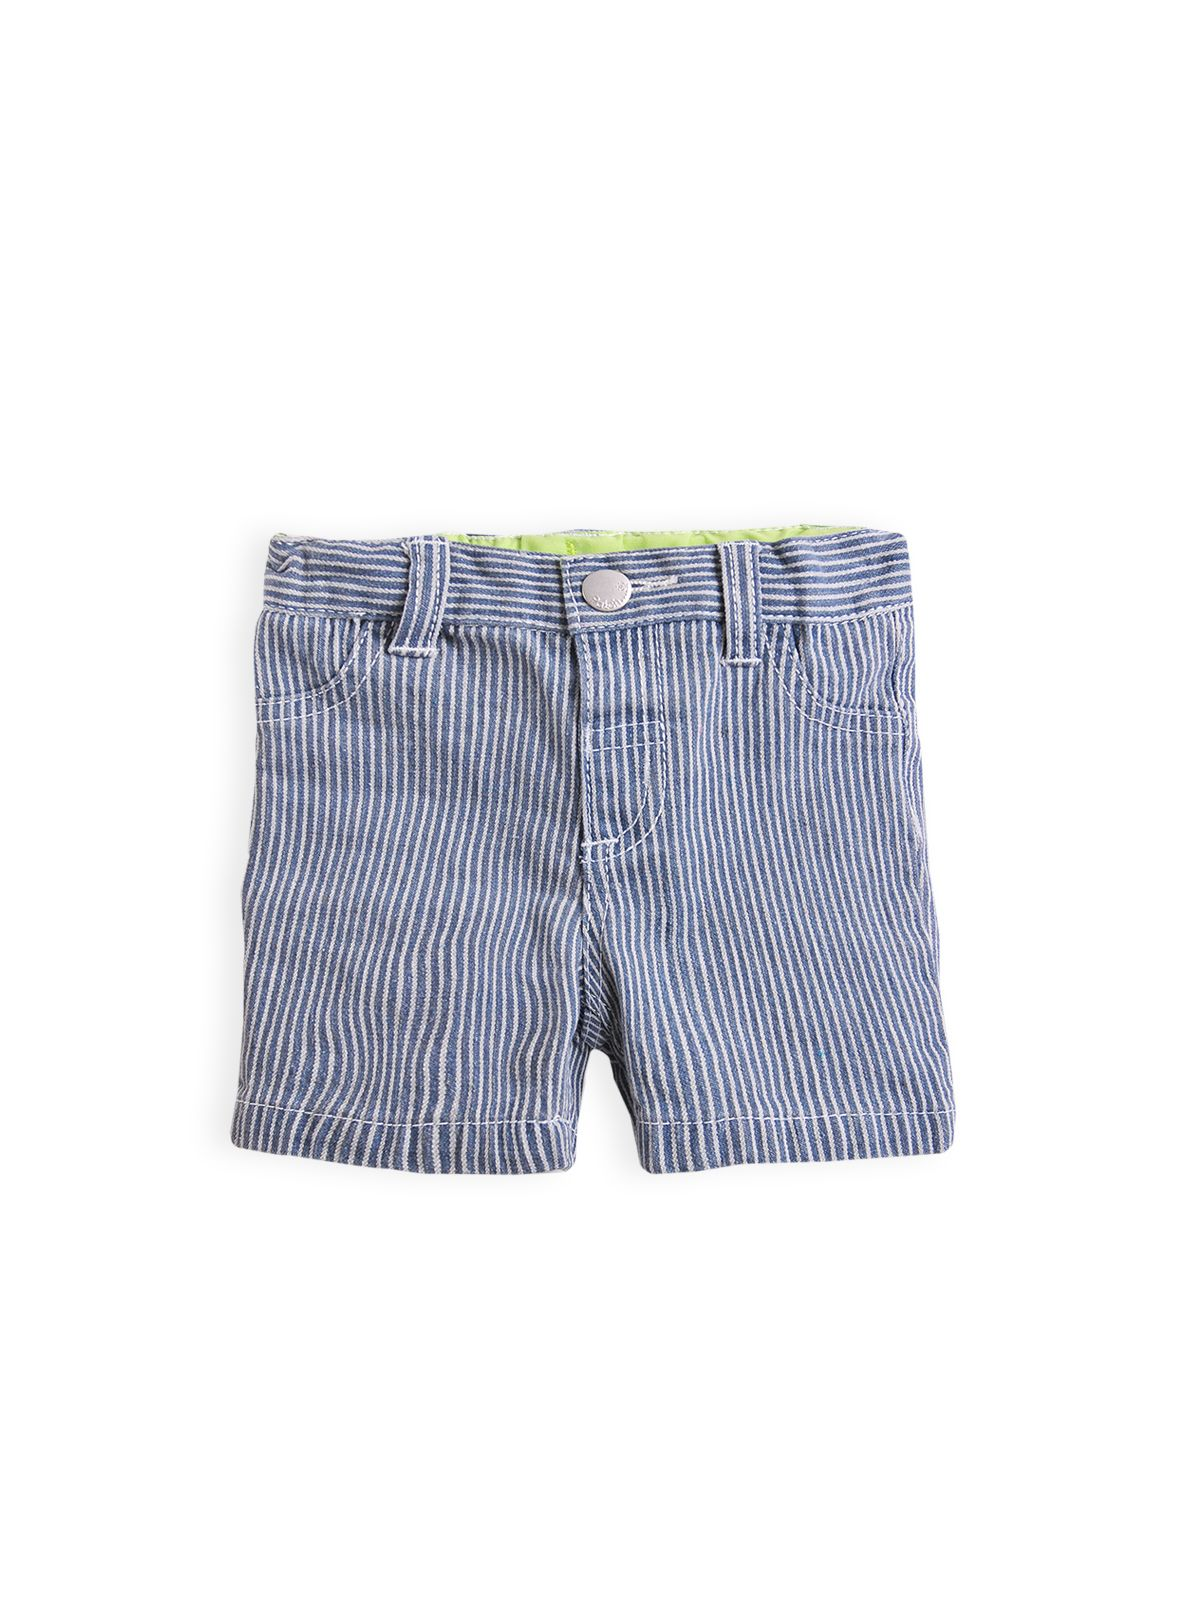 Boys stripe denim shorts